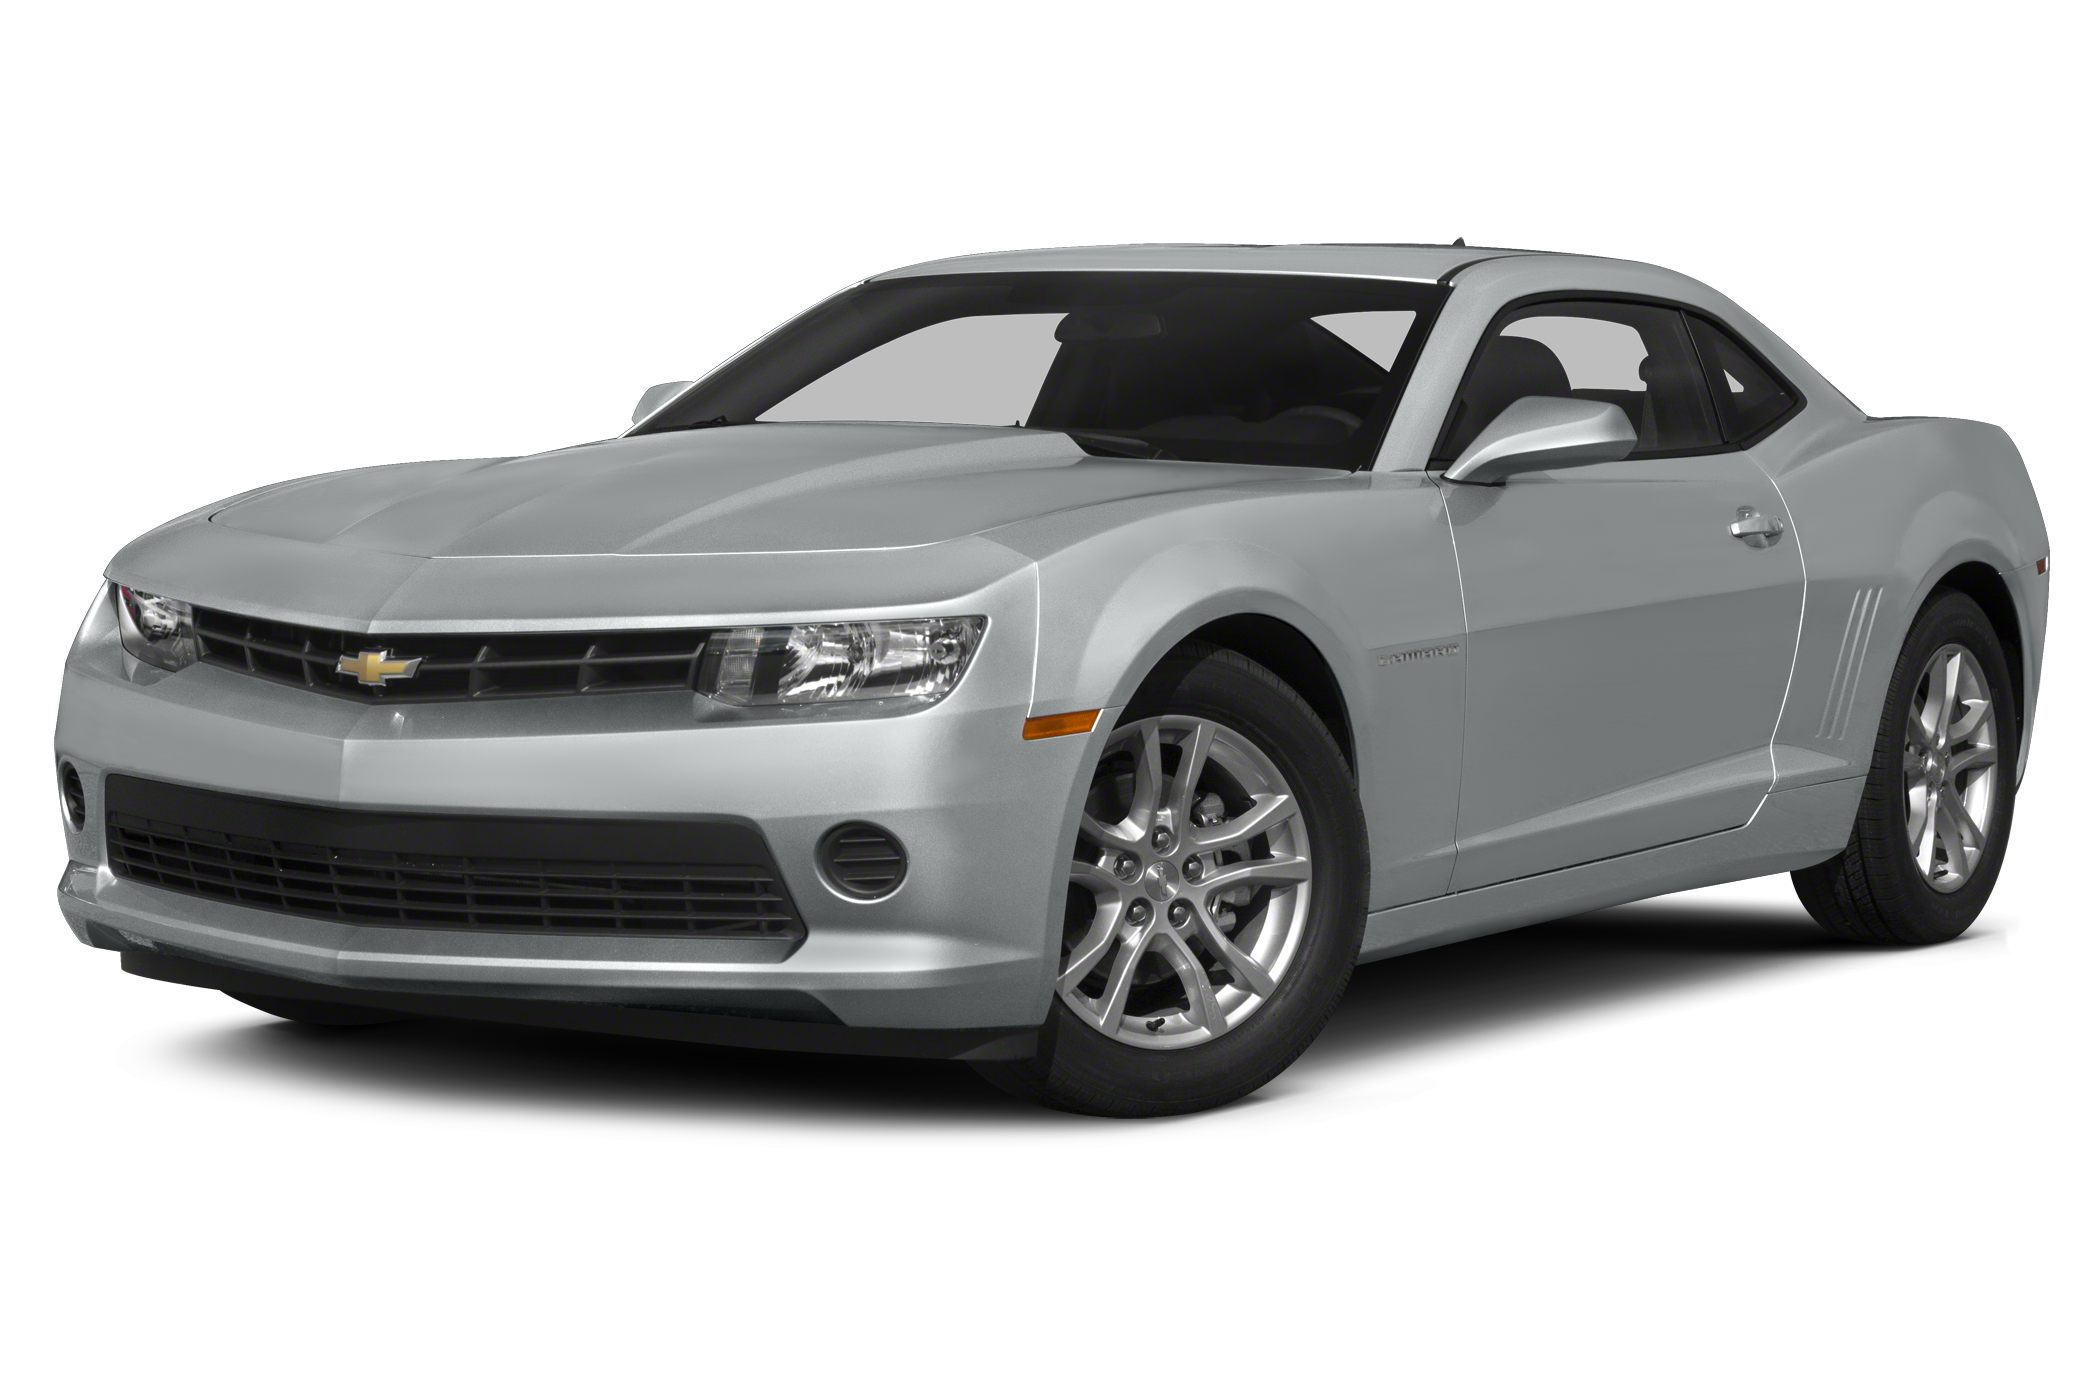 2014 Chevrolet Camaro LS w 2LS 2dr Coupe Specs and Prices